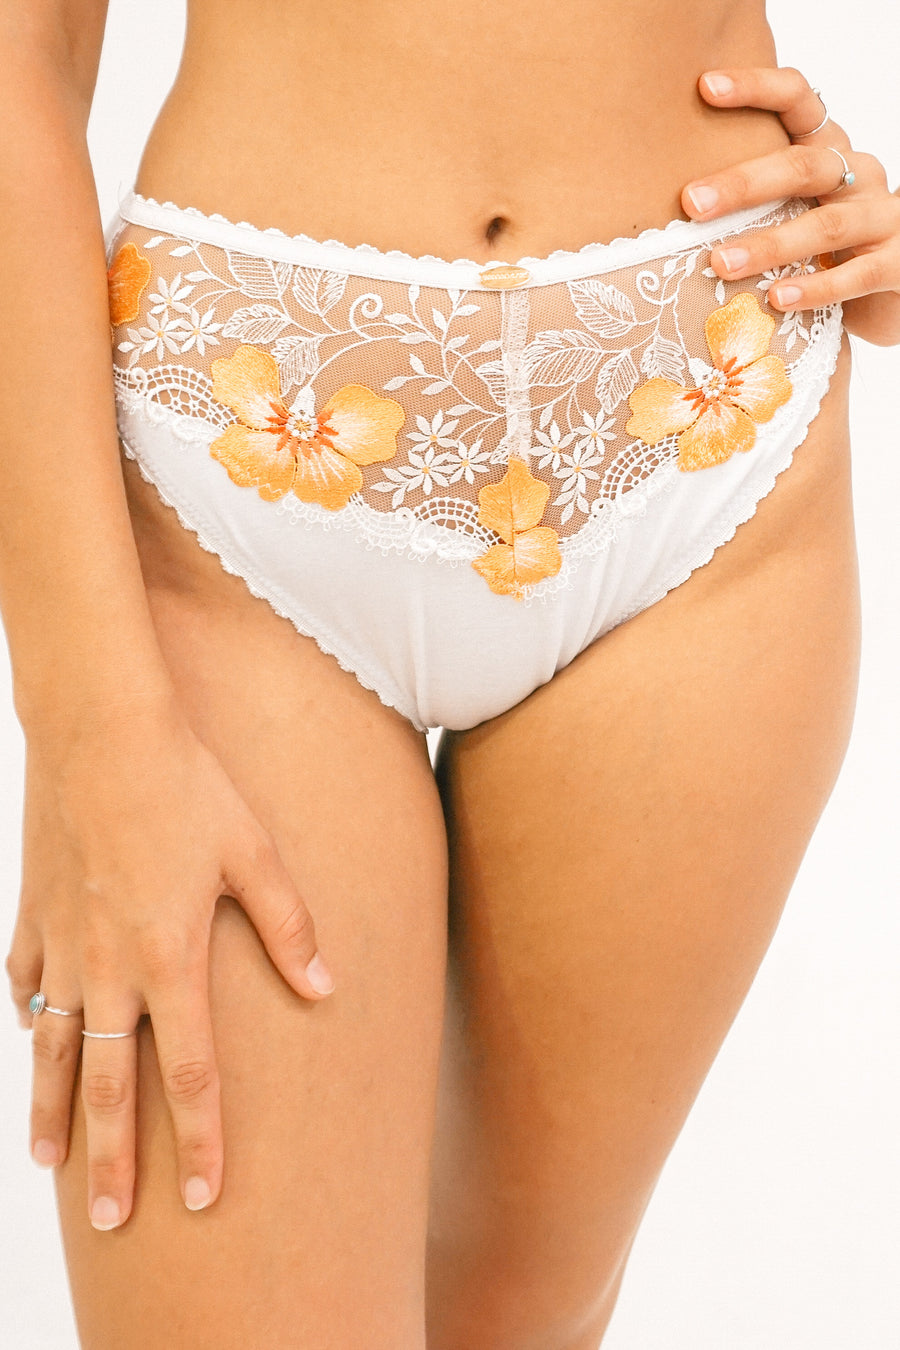 Buttercup High Leg Knicker